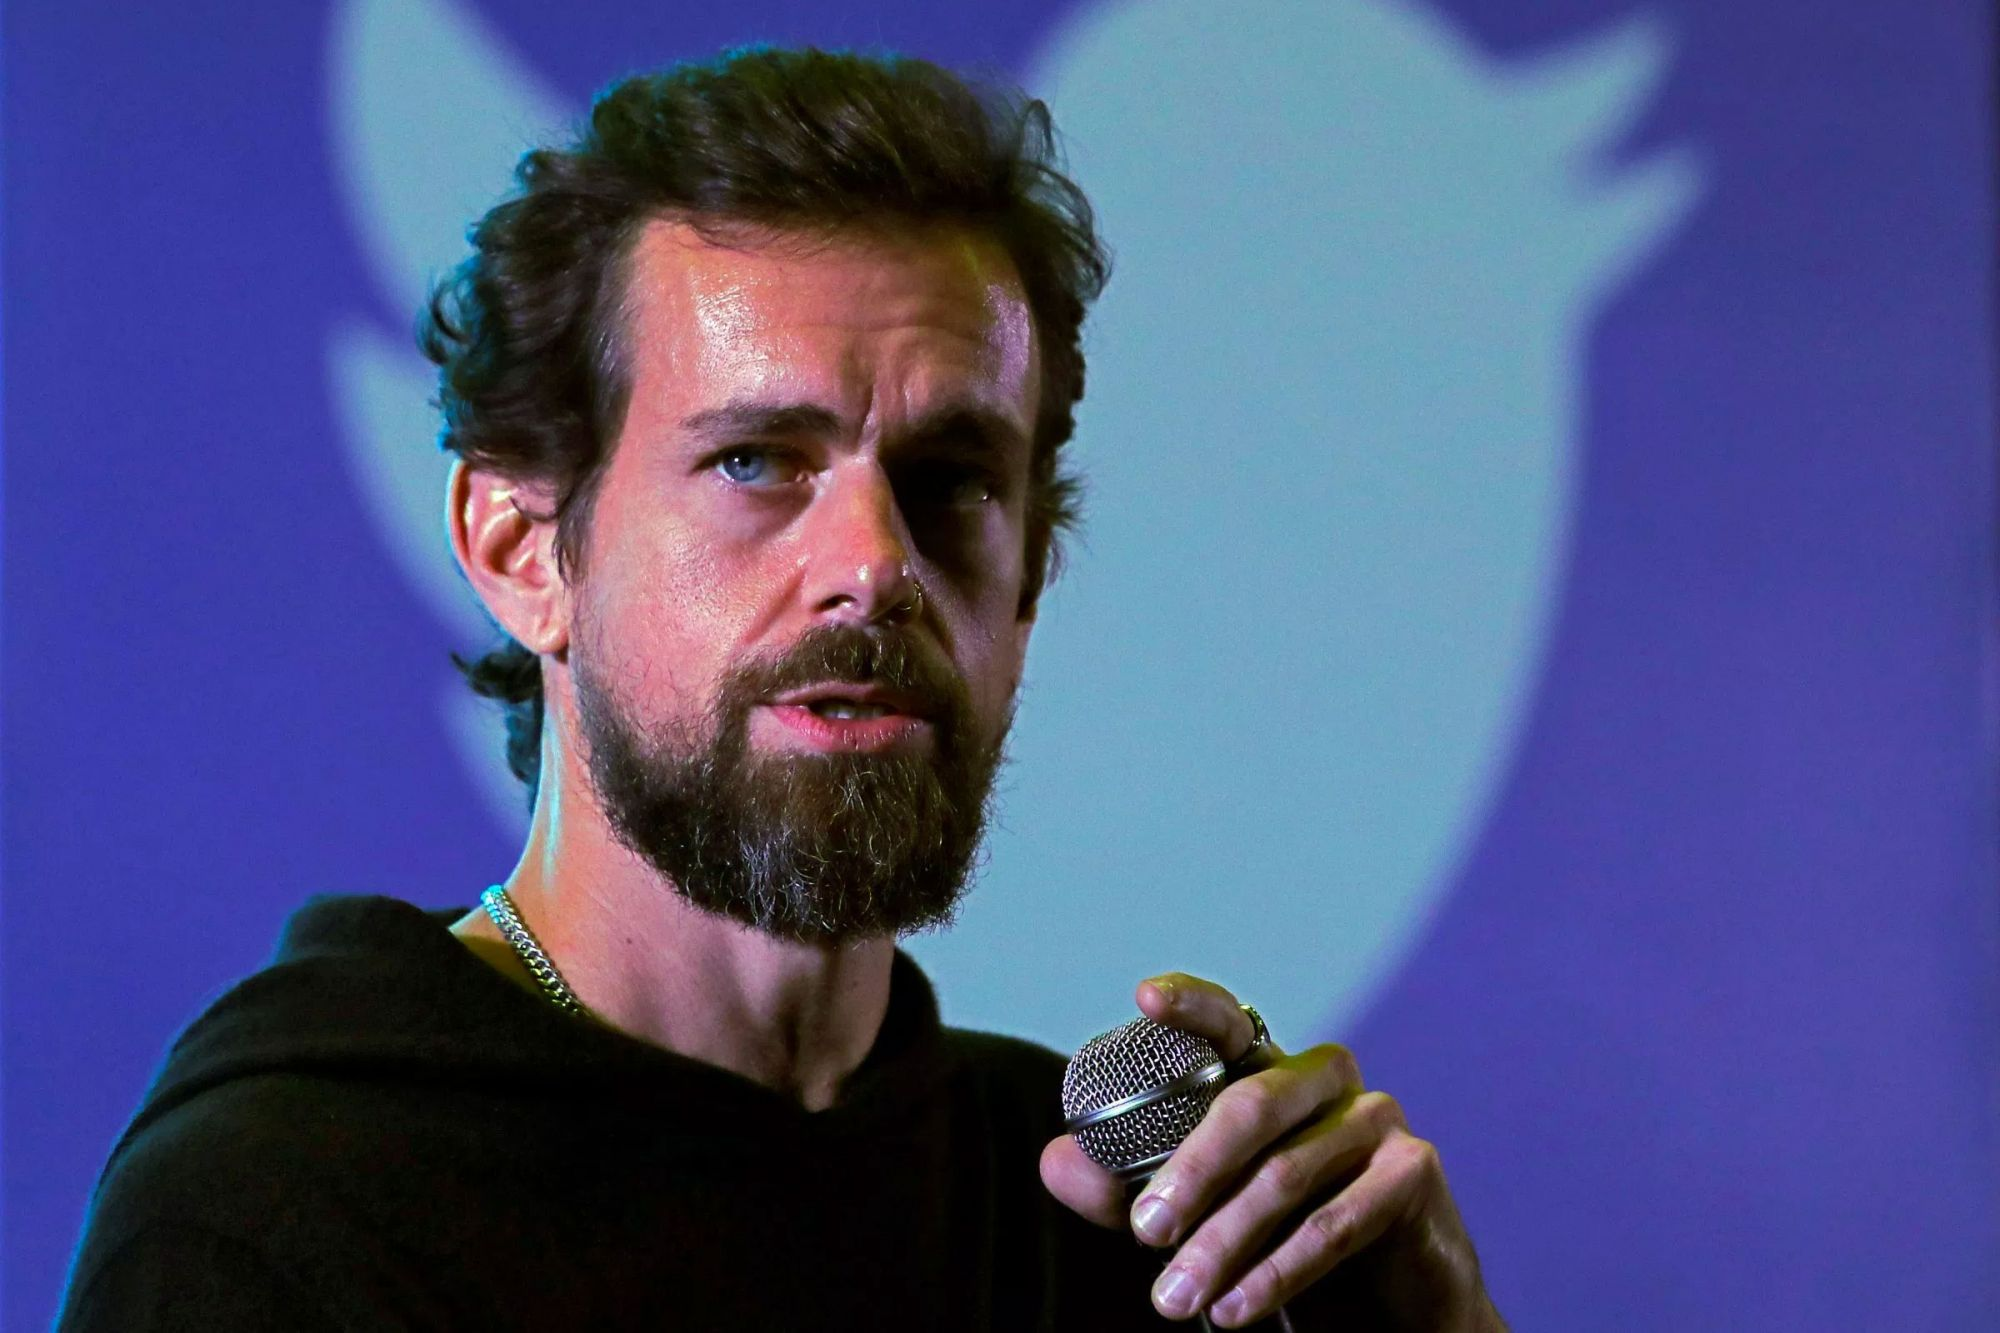 Jack Dorsey Says Twitter Makes It 'Super Easy' to Harass and Abuse Others